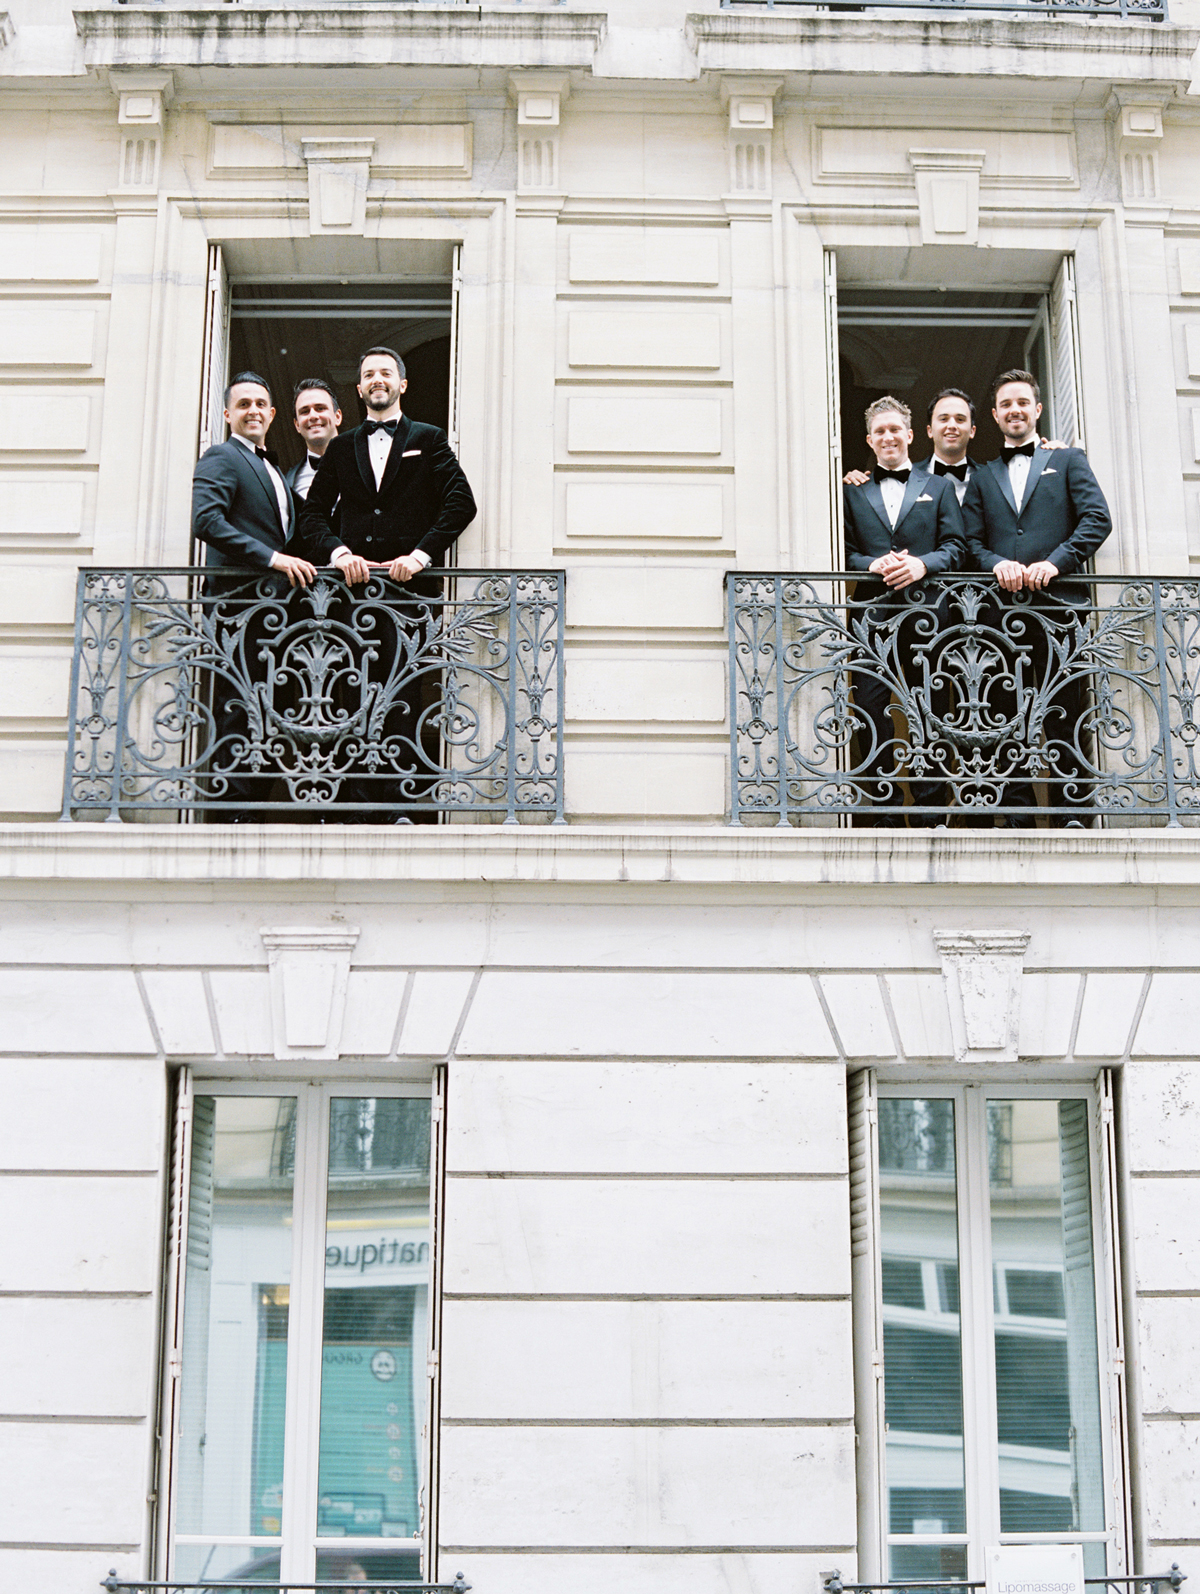 groom and groomsmen posing at window balcony of parisian building